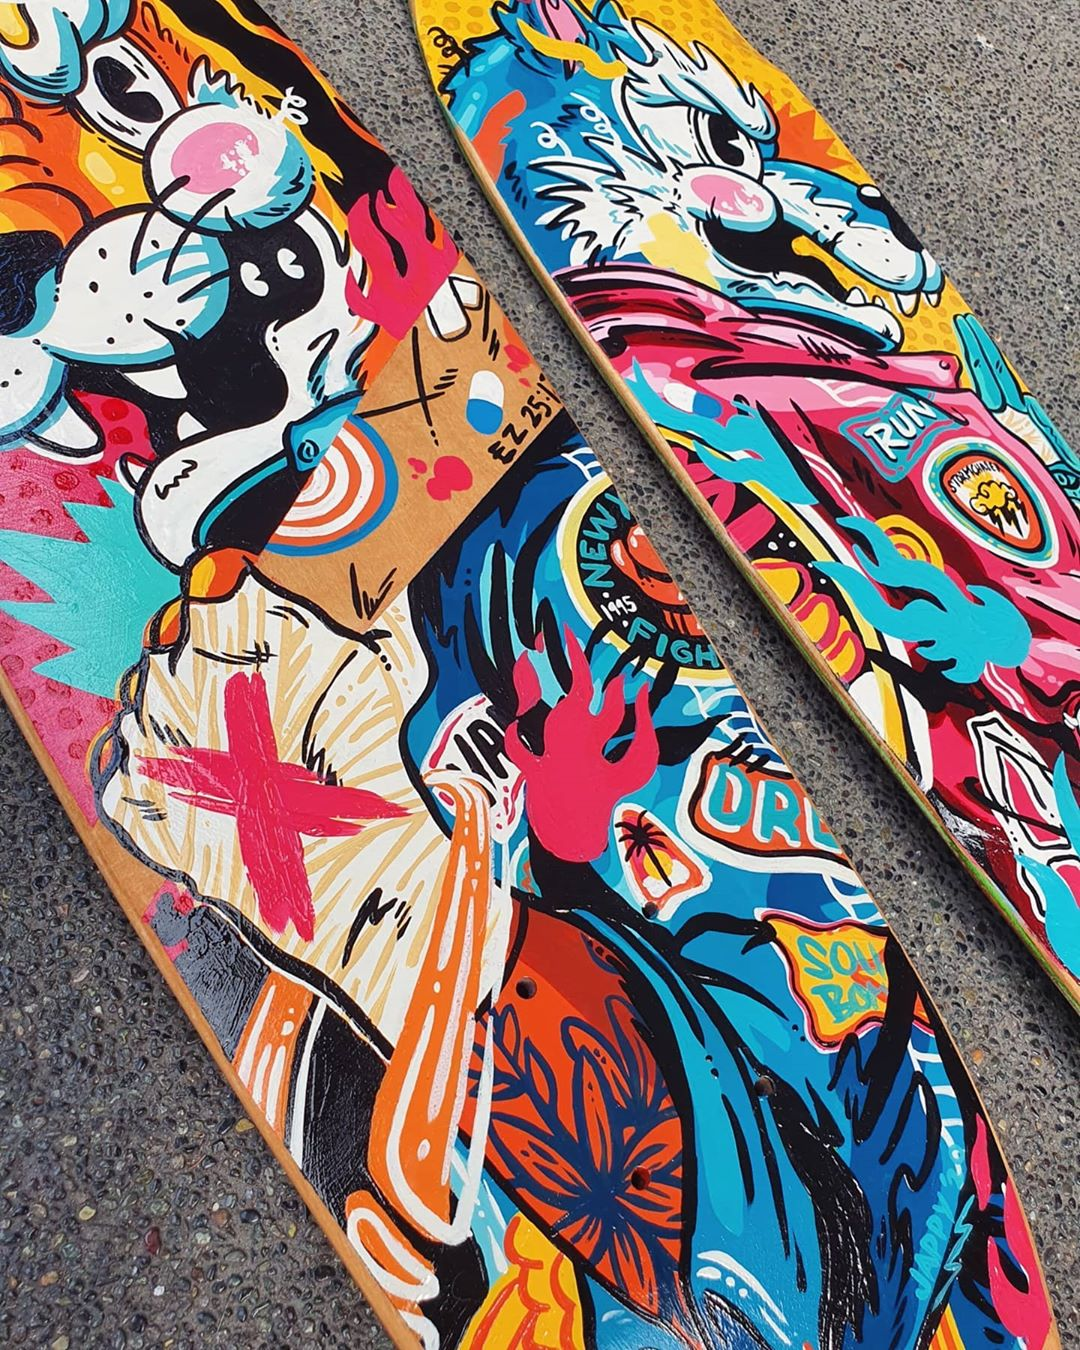 Custom Skateboards By Jappy Agoncillo 3.jpg